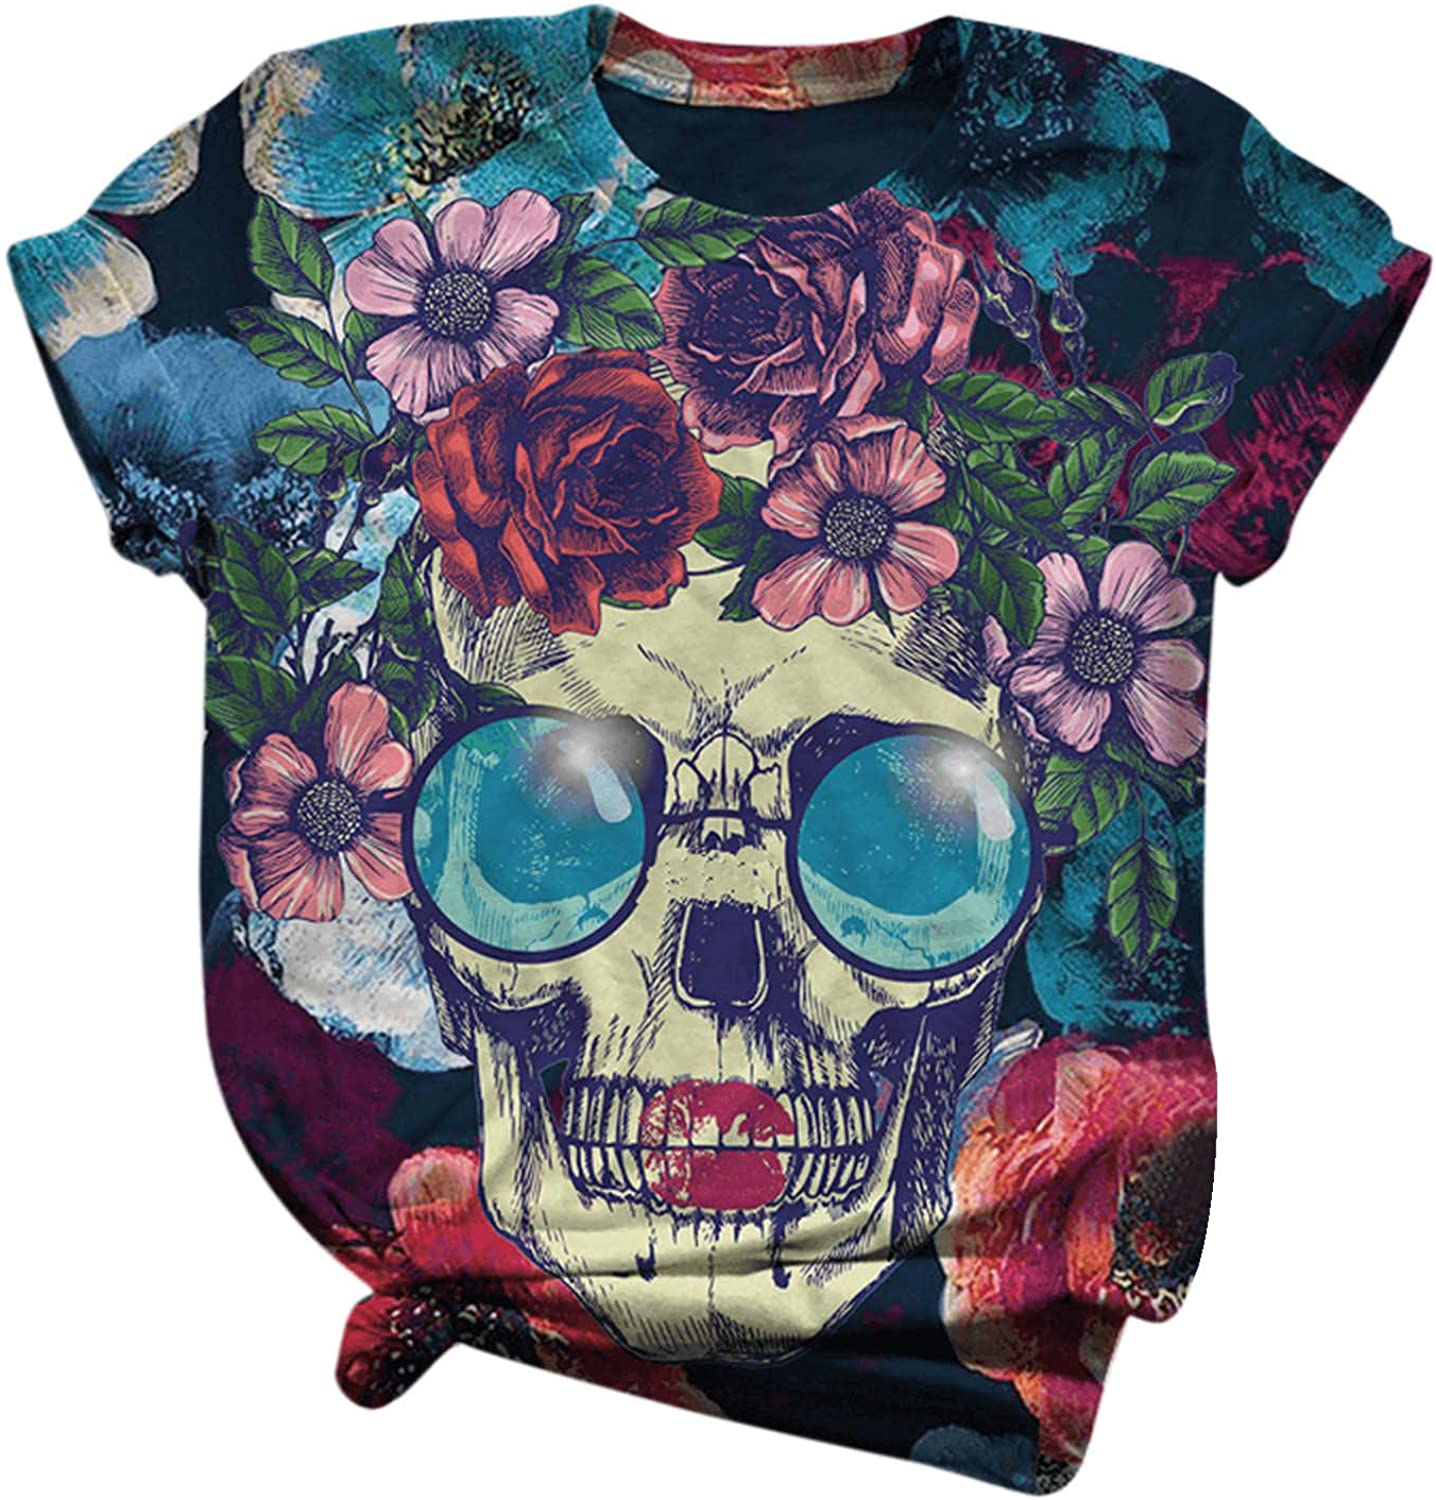 Women's Hipster Tees Casual Short Sleeve 3D Skull Printed T Shirts Vintage Floral Graphic T-Shirt for Women